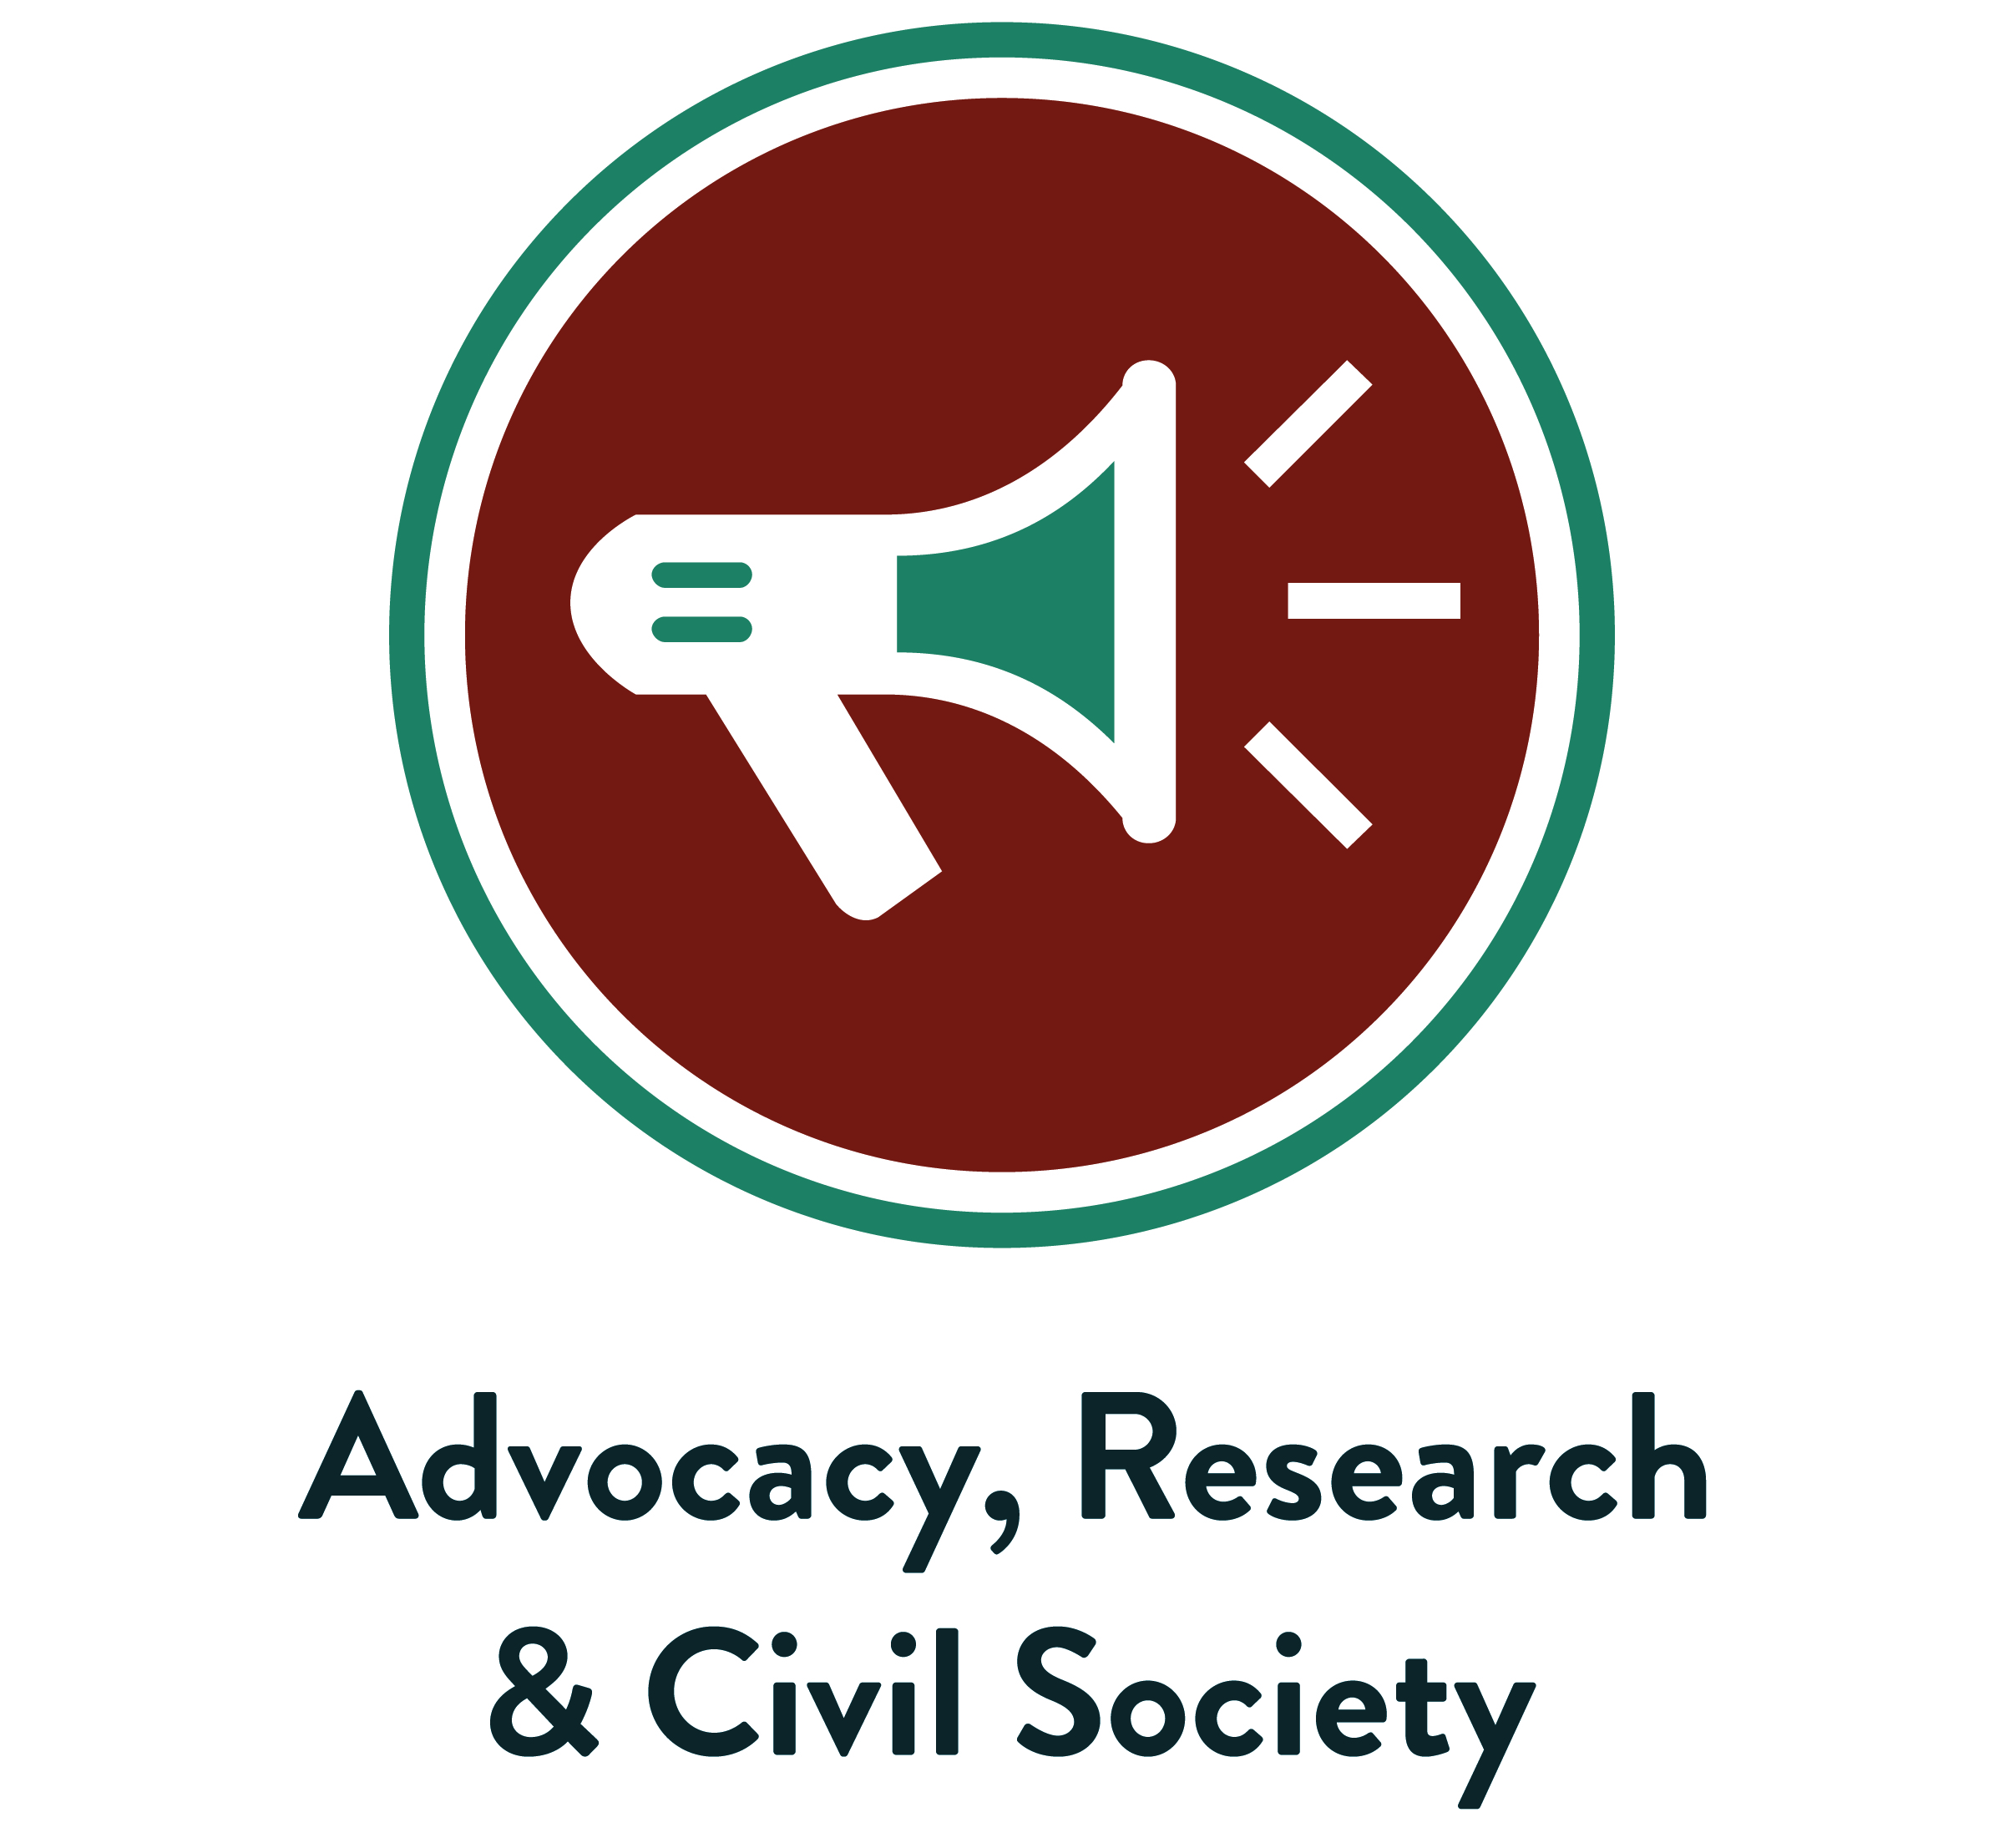 Advocacy, Research & Civil Society